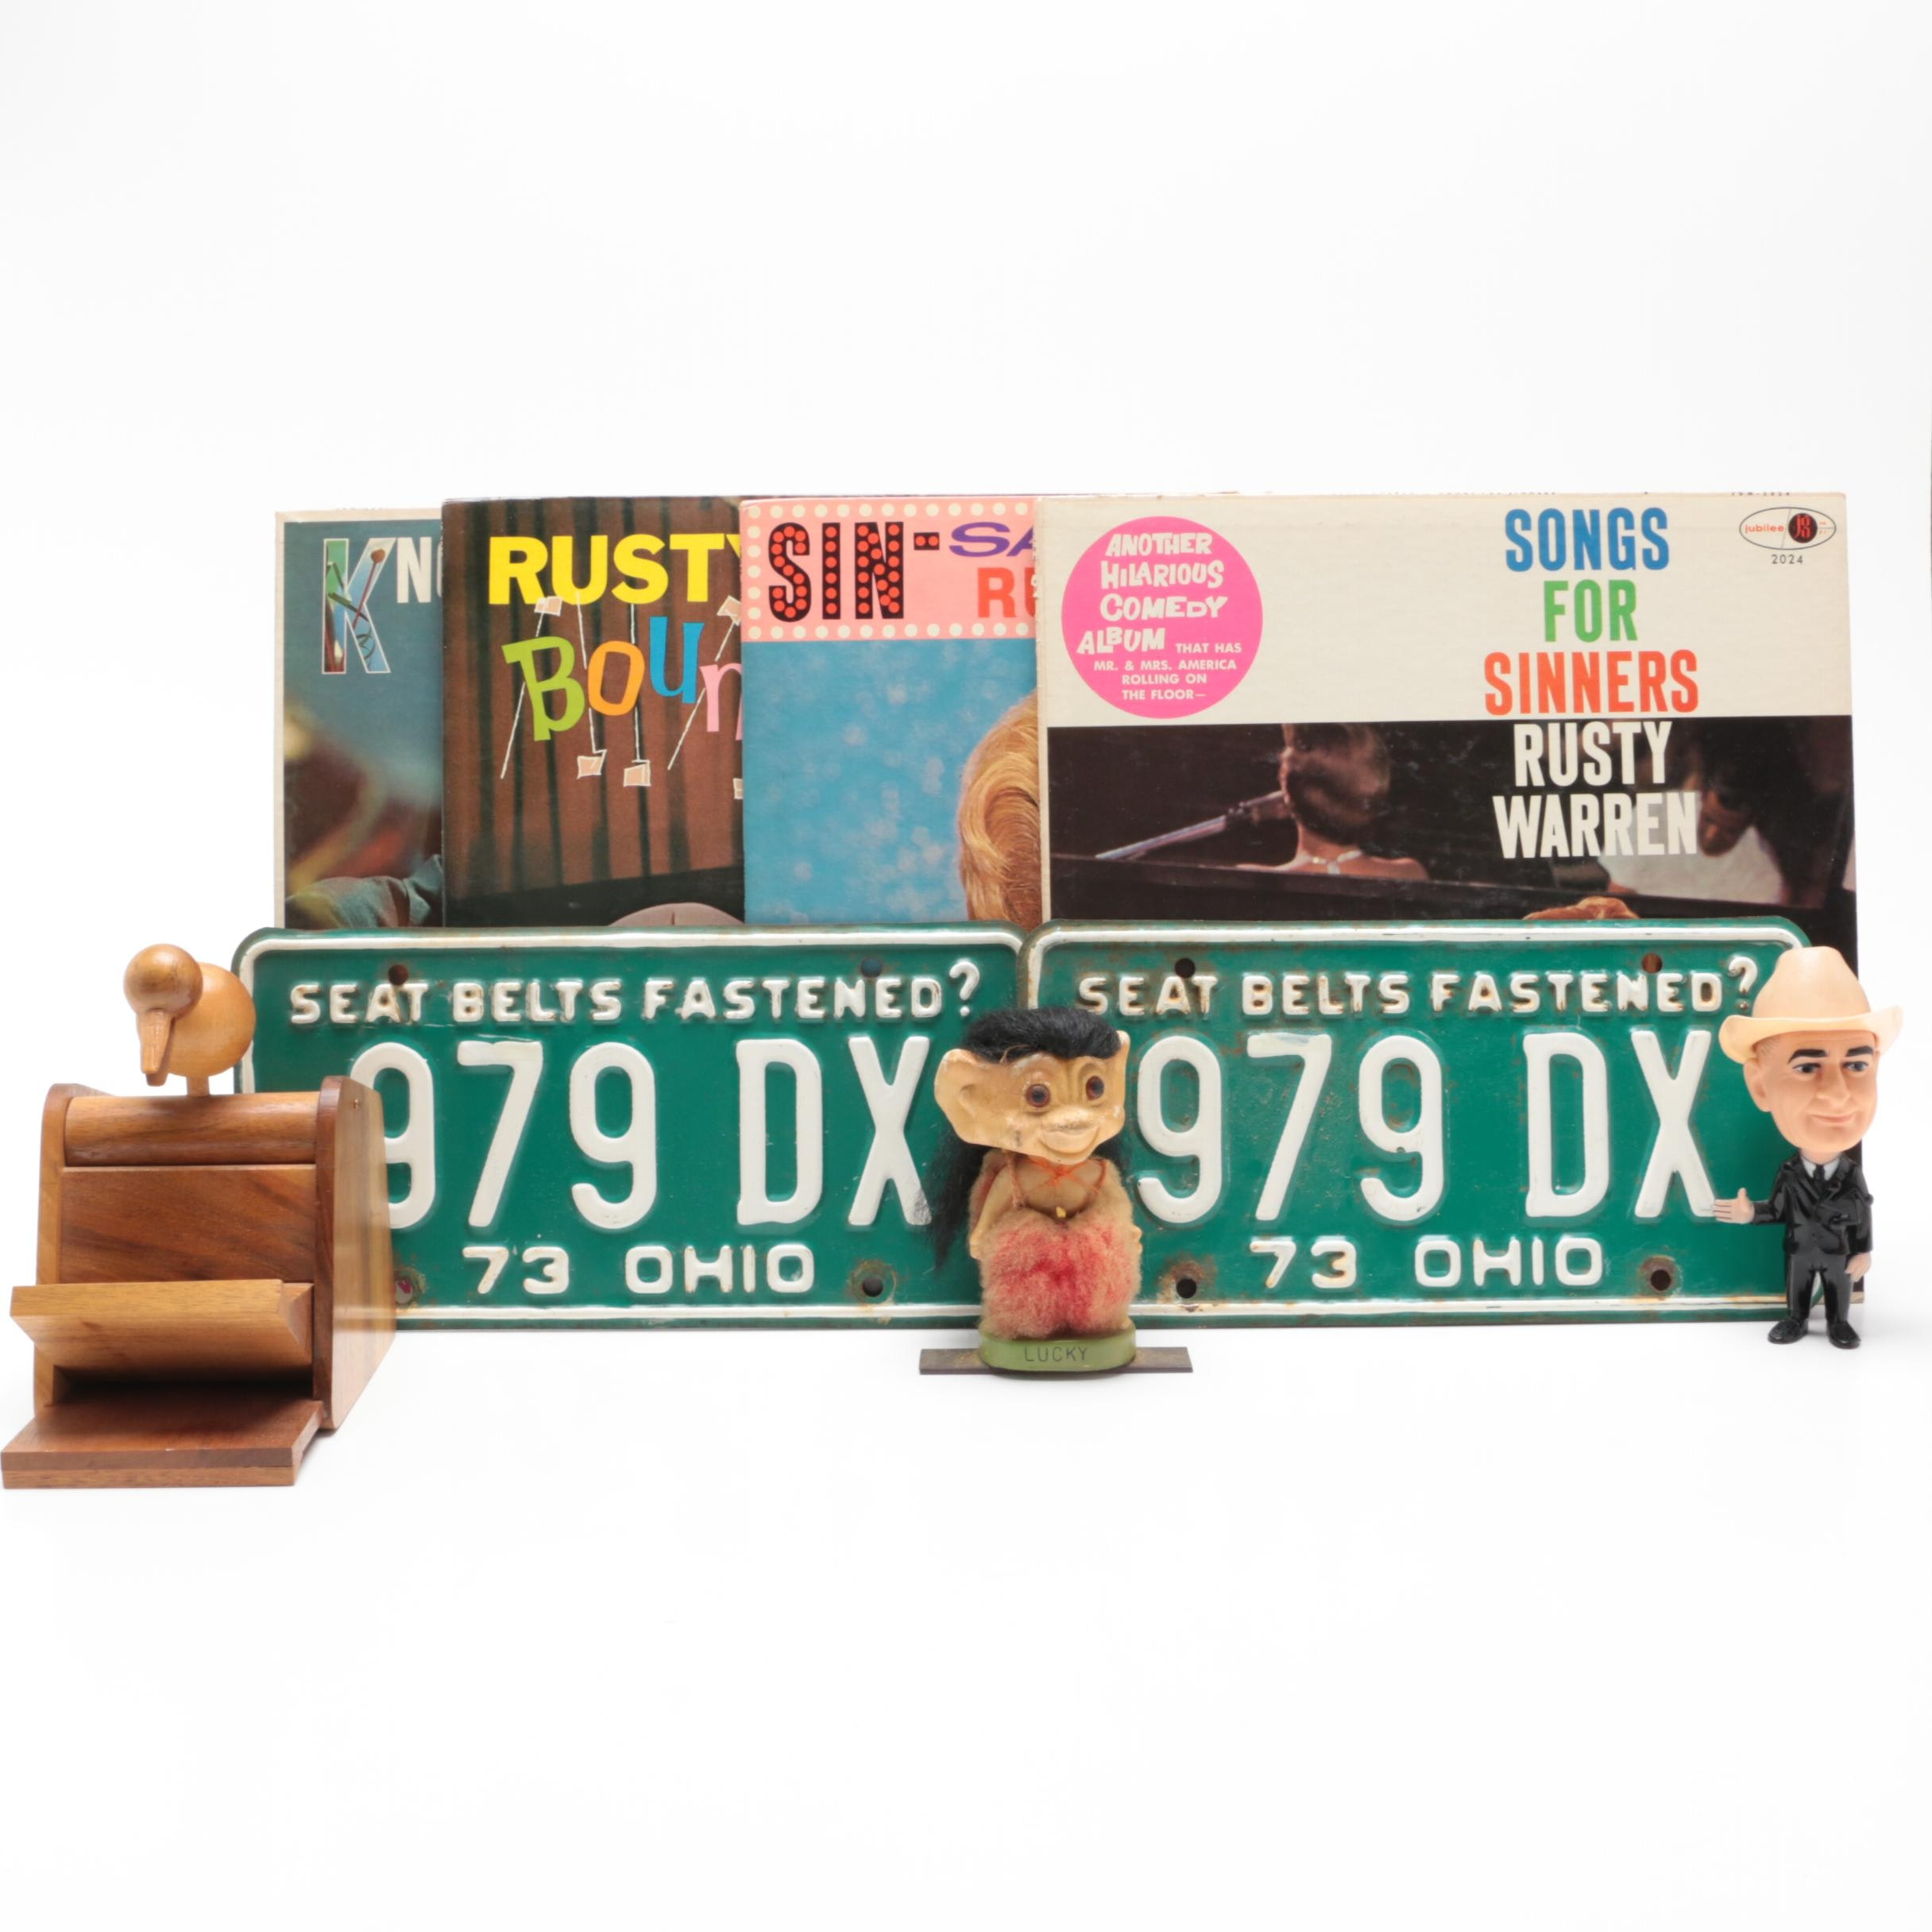 Cigarette Dispenser, Troll Nodder, LBJ Doll, License Plate and Vinyl Records